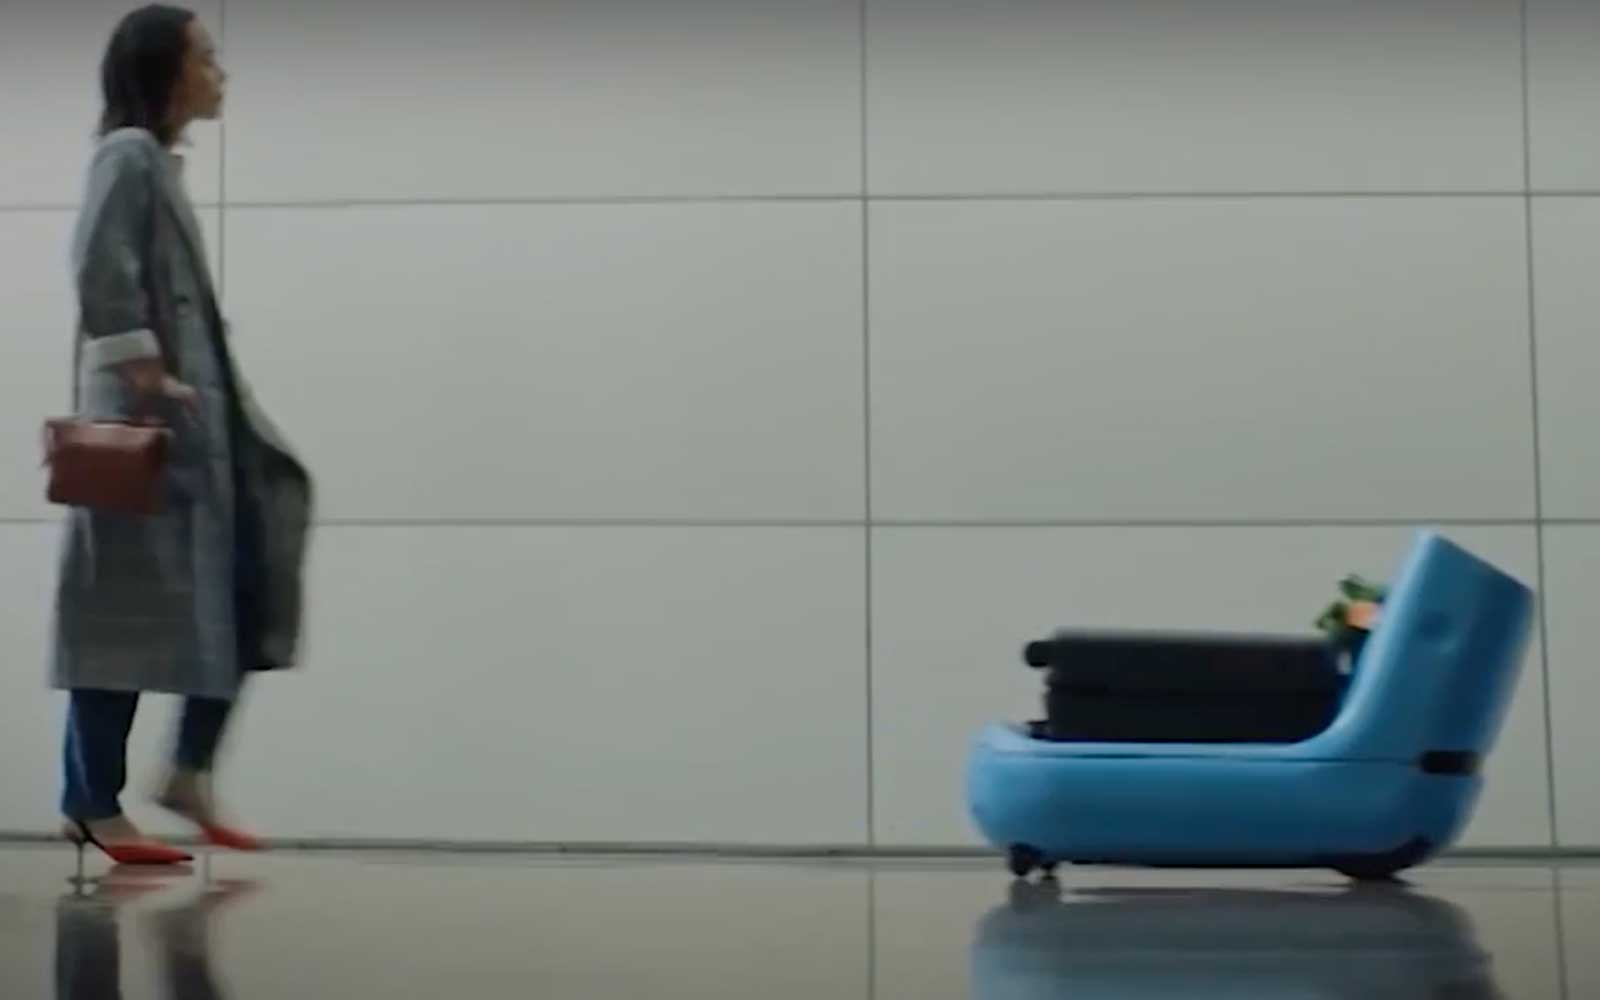 Care-E robot from KLM Royal Dutch Airlines